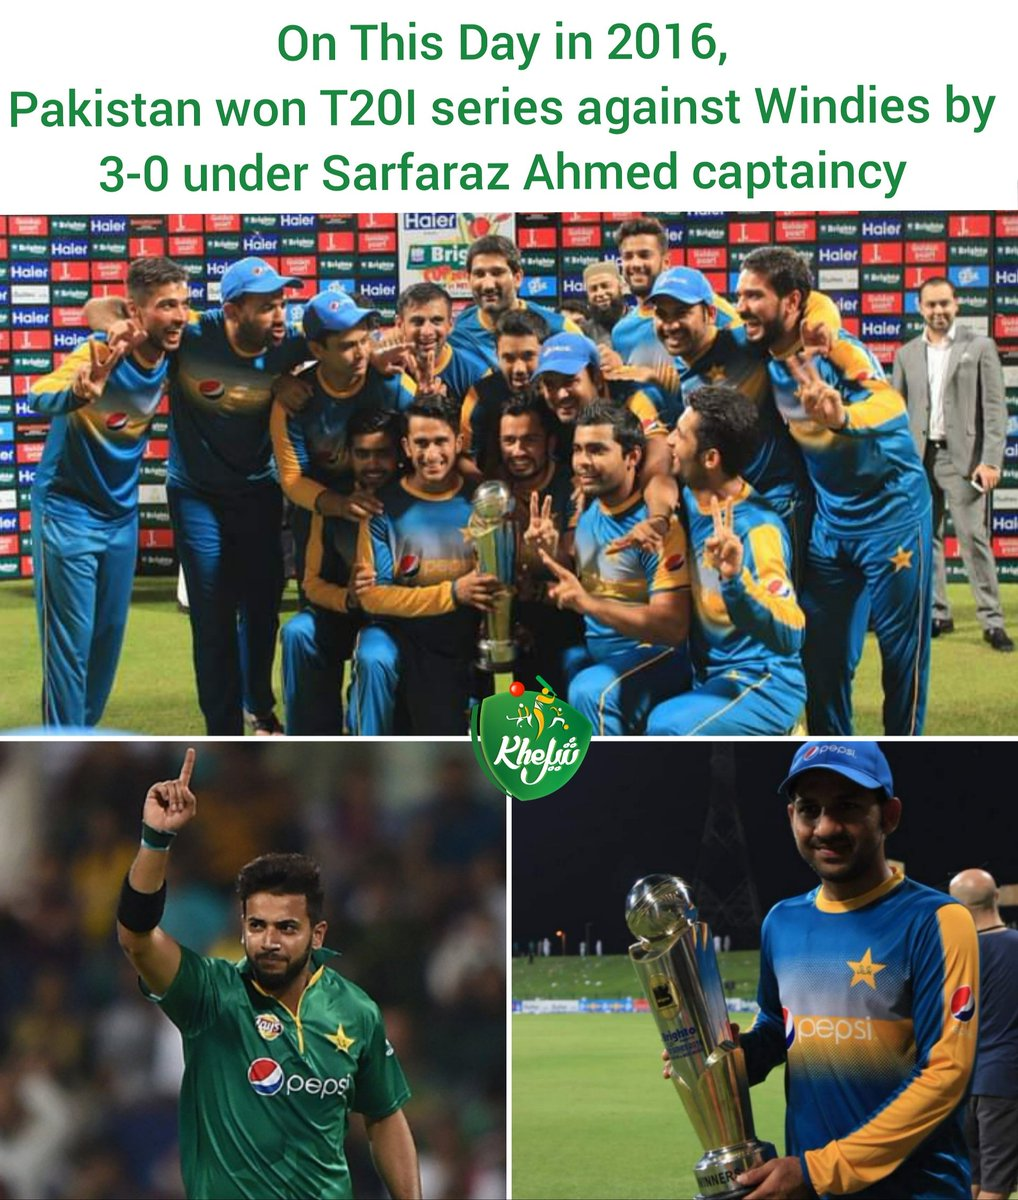 #OnThisDay in 2016, Pakistan beat Windies by 8 wickets at Abu Dhabi & won T20 series 3-0 under @SarfarazA_54 captaincy, @simadwasim took 3/21 in 4 overs & named man of the match along with man of the series.  #PAKvWI #Cricket #Pakistan #Windies #AbuDhabi #ImadWasim #SarfarazAhmed https://t.co/00o5P4R7me